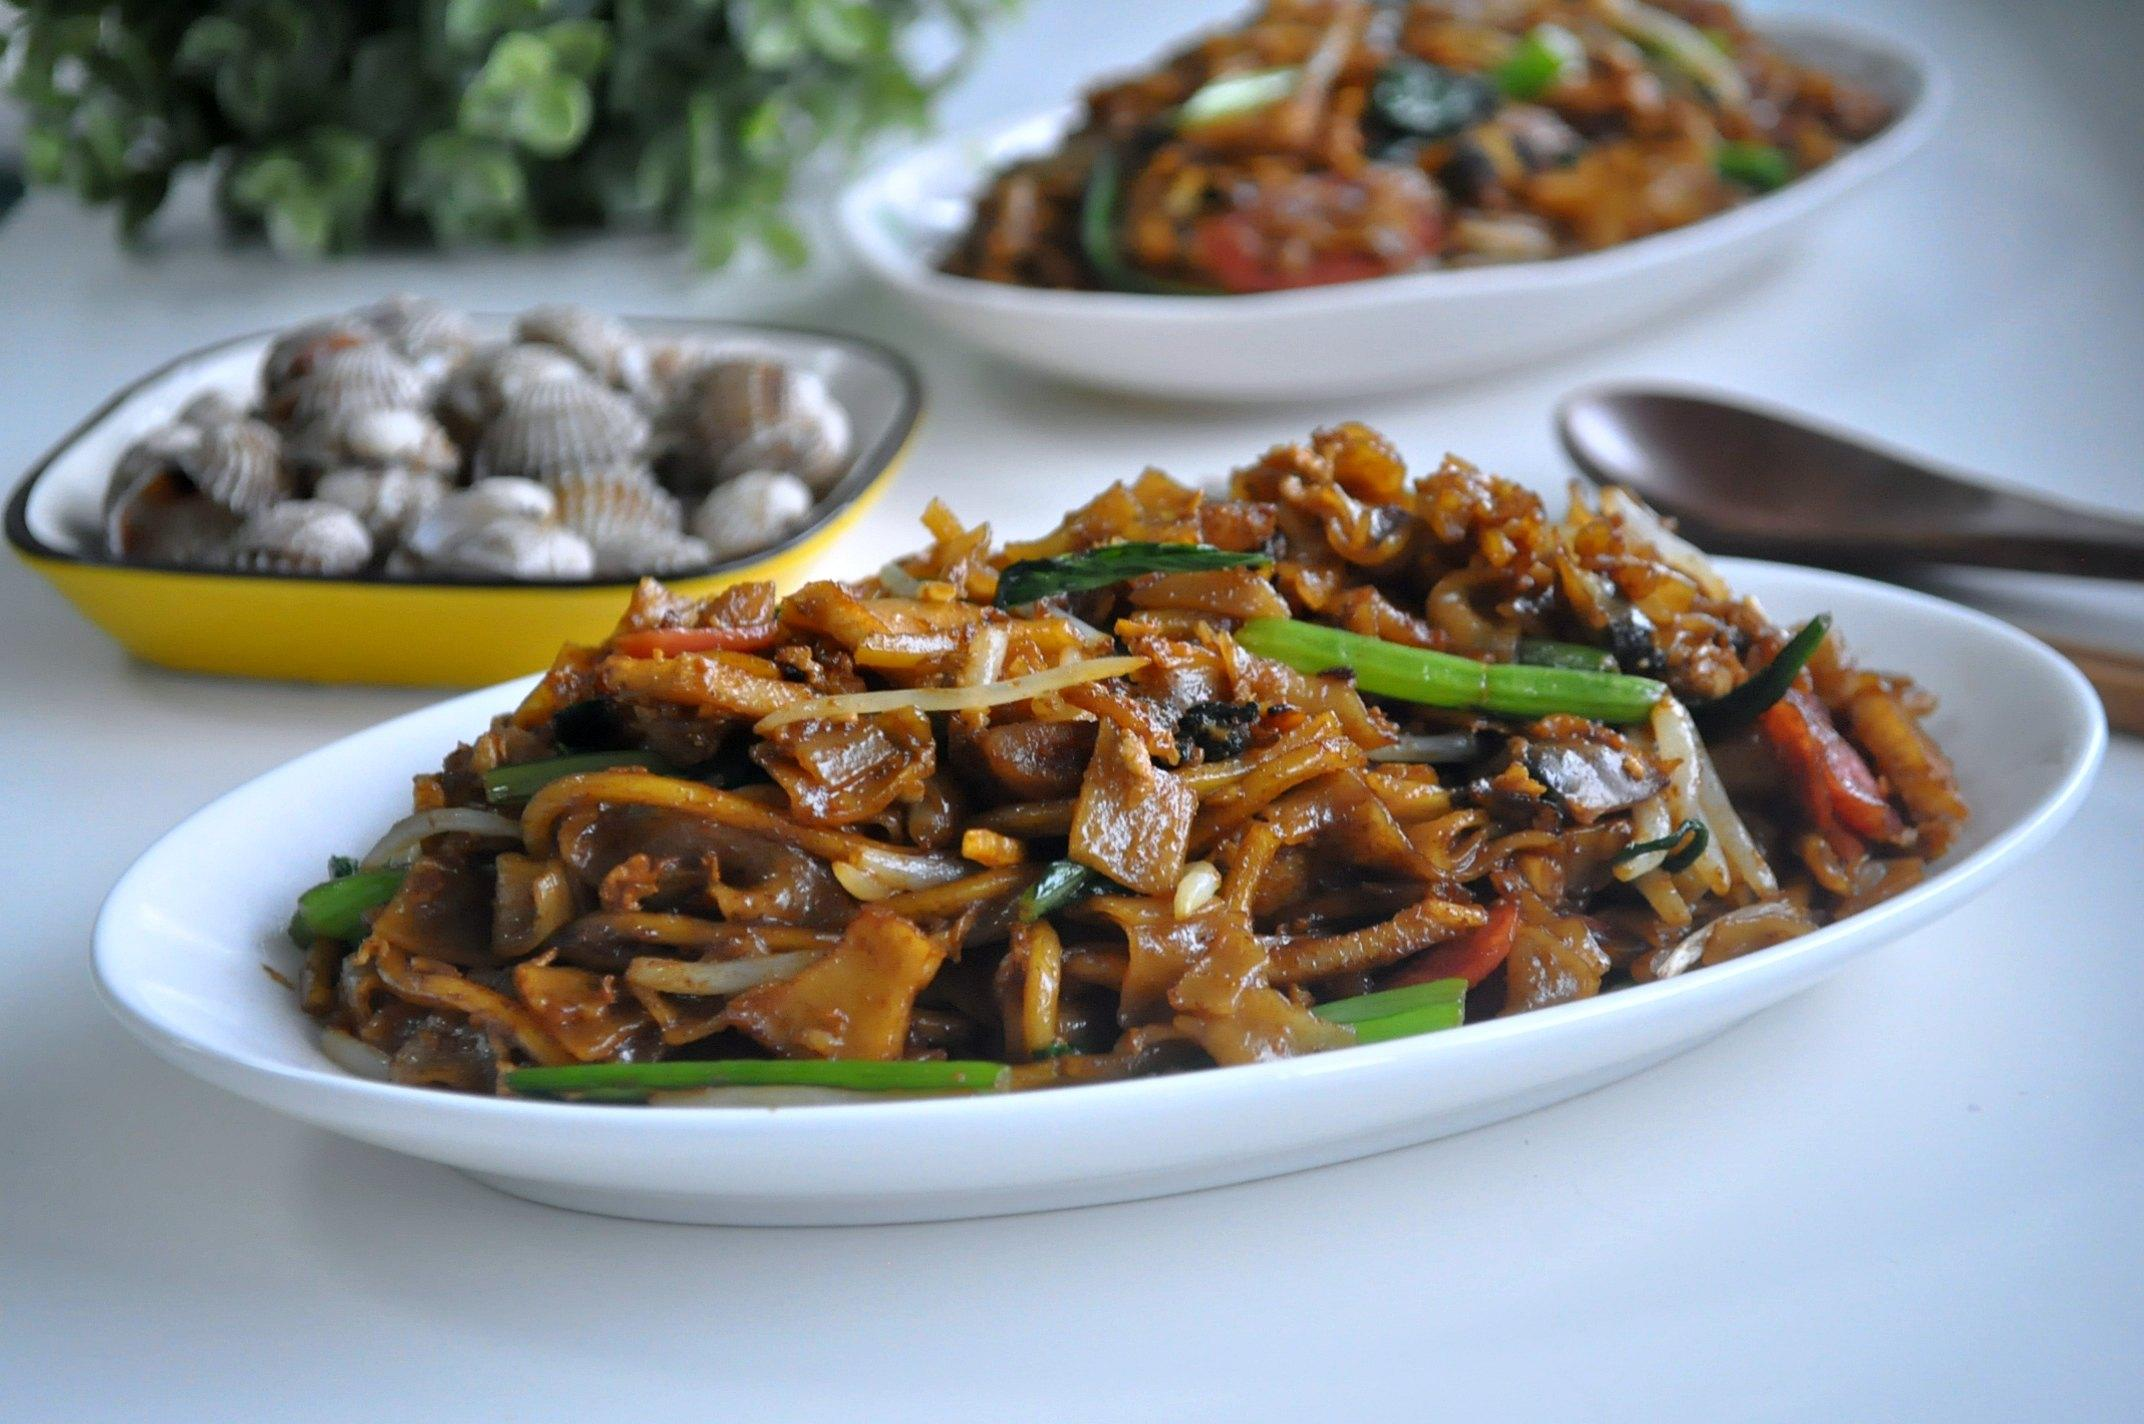 Singapore Fried Kway Teow